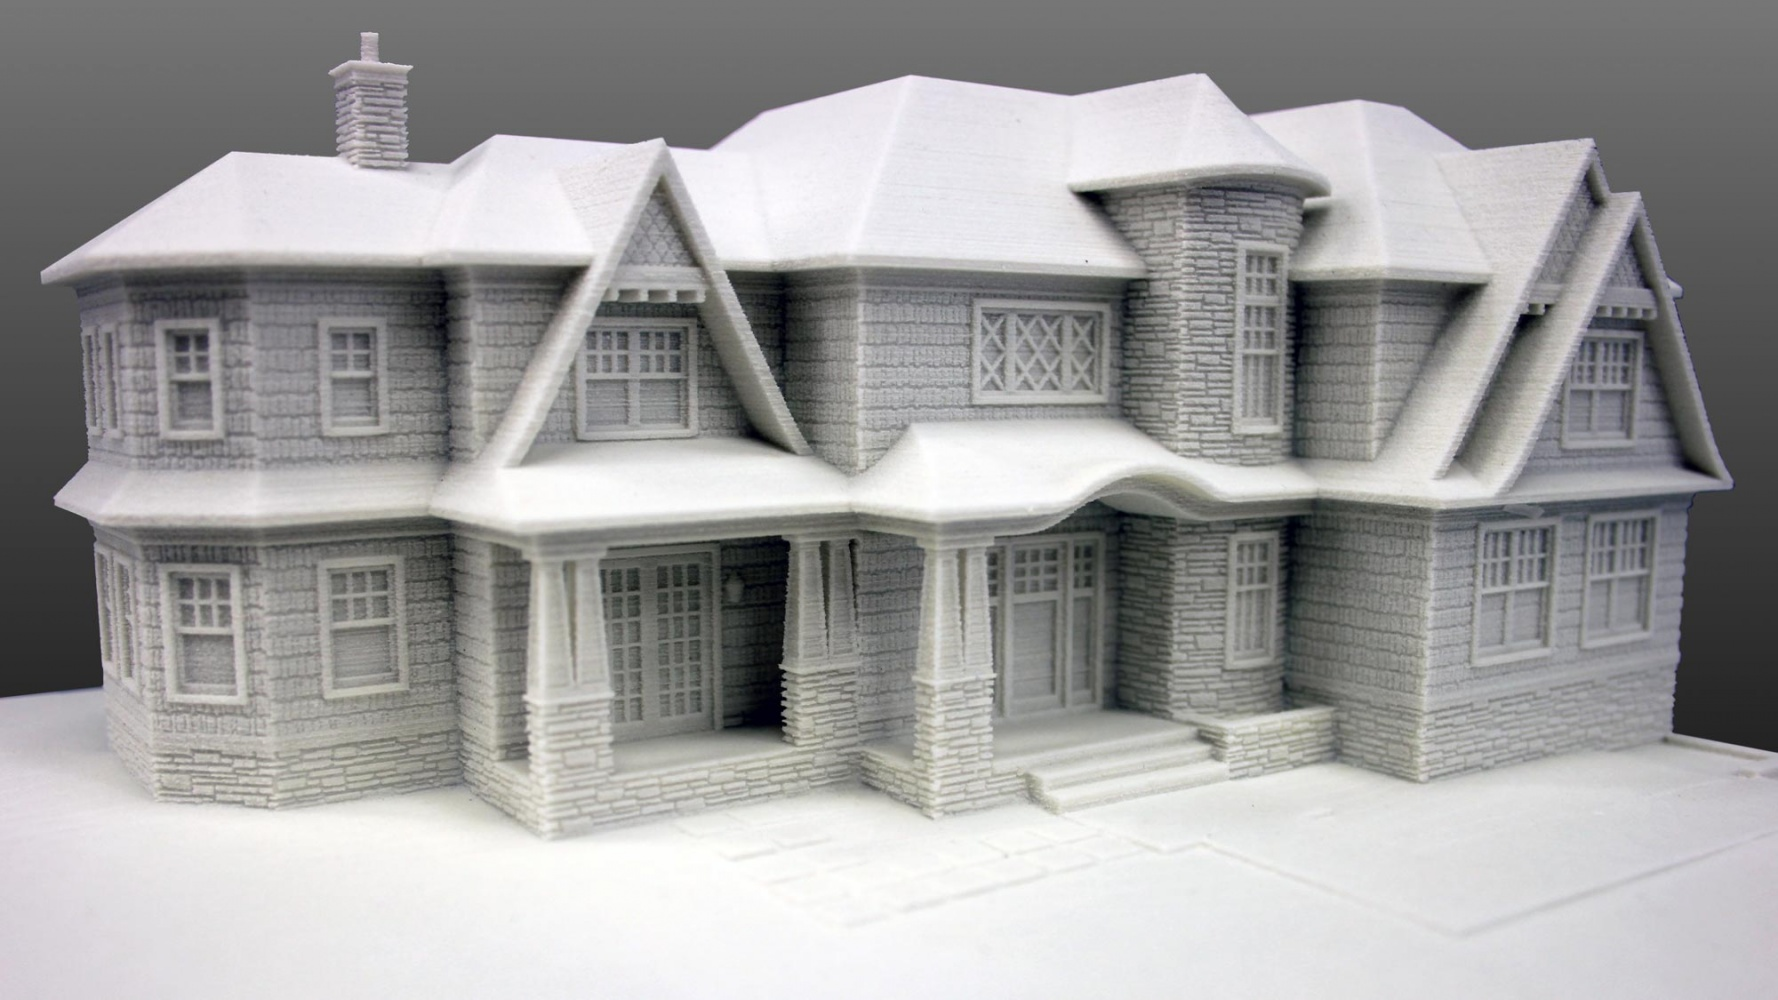 Architectural 3D Print of a home with material textures